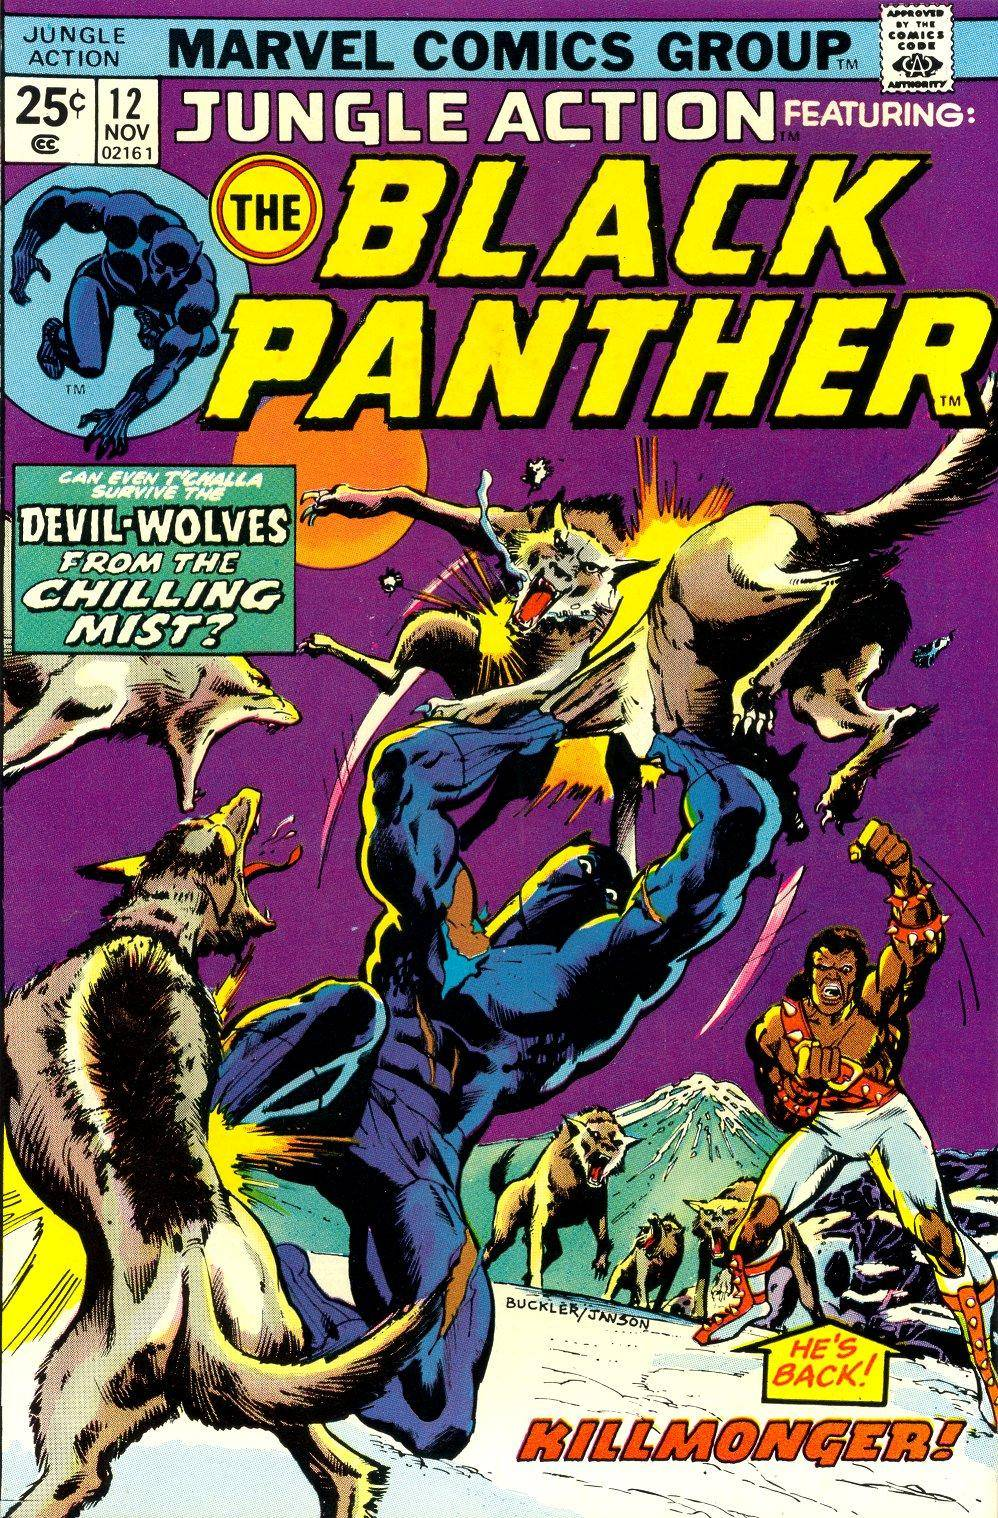 Jungle Action v2 012 featuring Black Panther